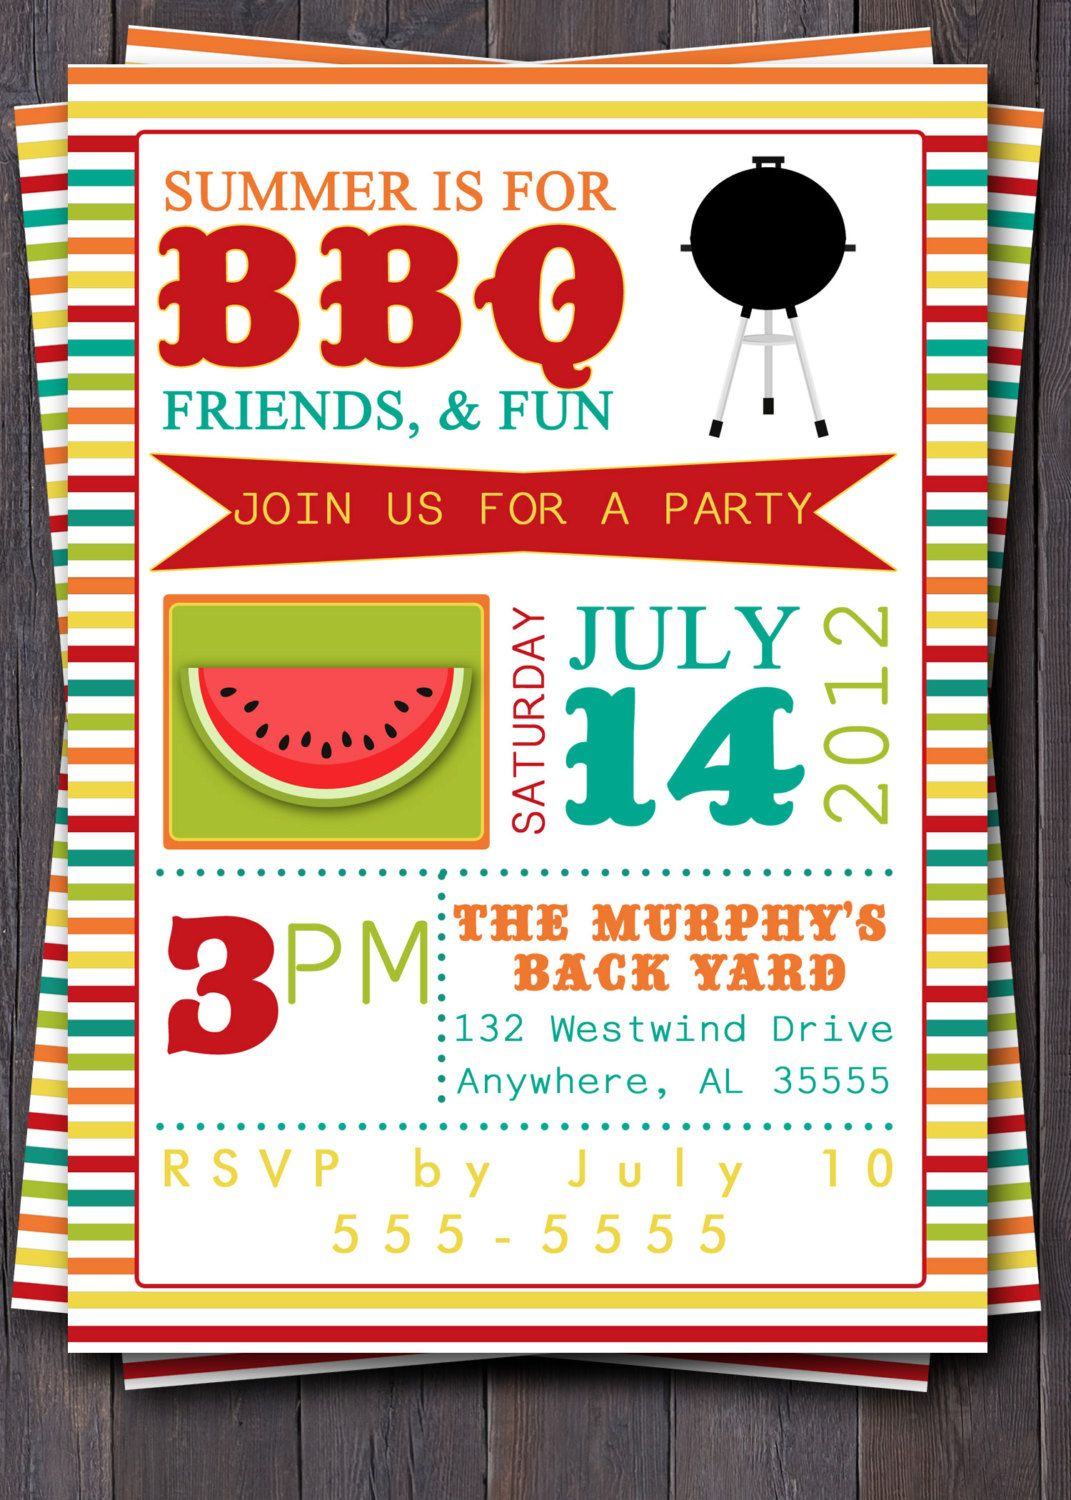 bbq party invitation invite birthday baby shower pool party